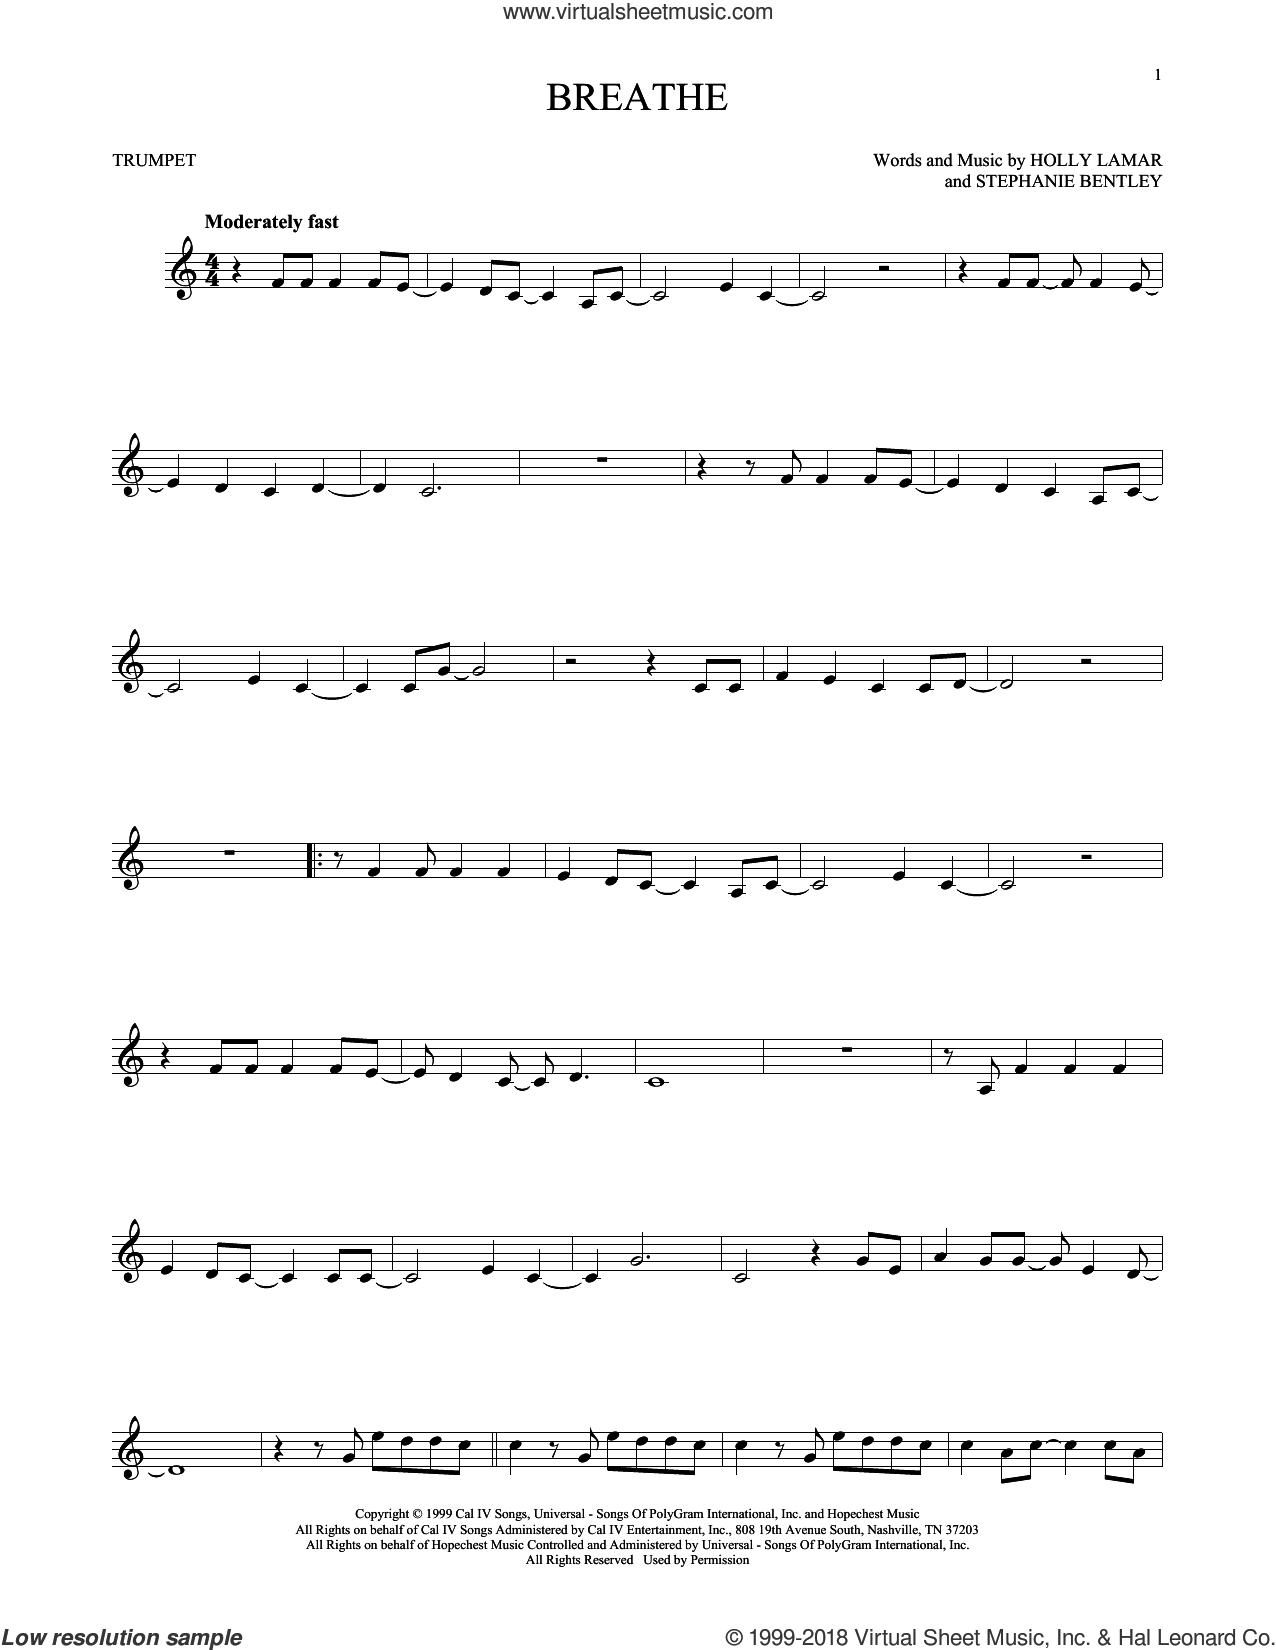 Breathe sheet music for trumpet solo by Faith Hill, Holly Lamar and Stephanie Bentley, intermediate skill level